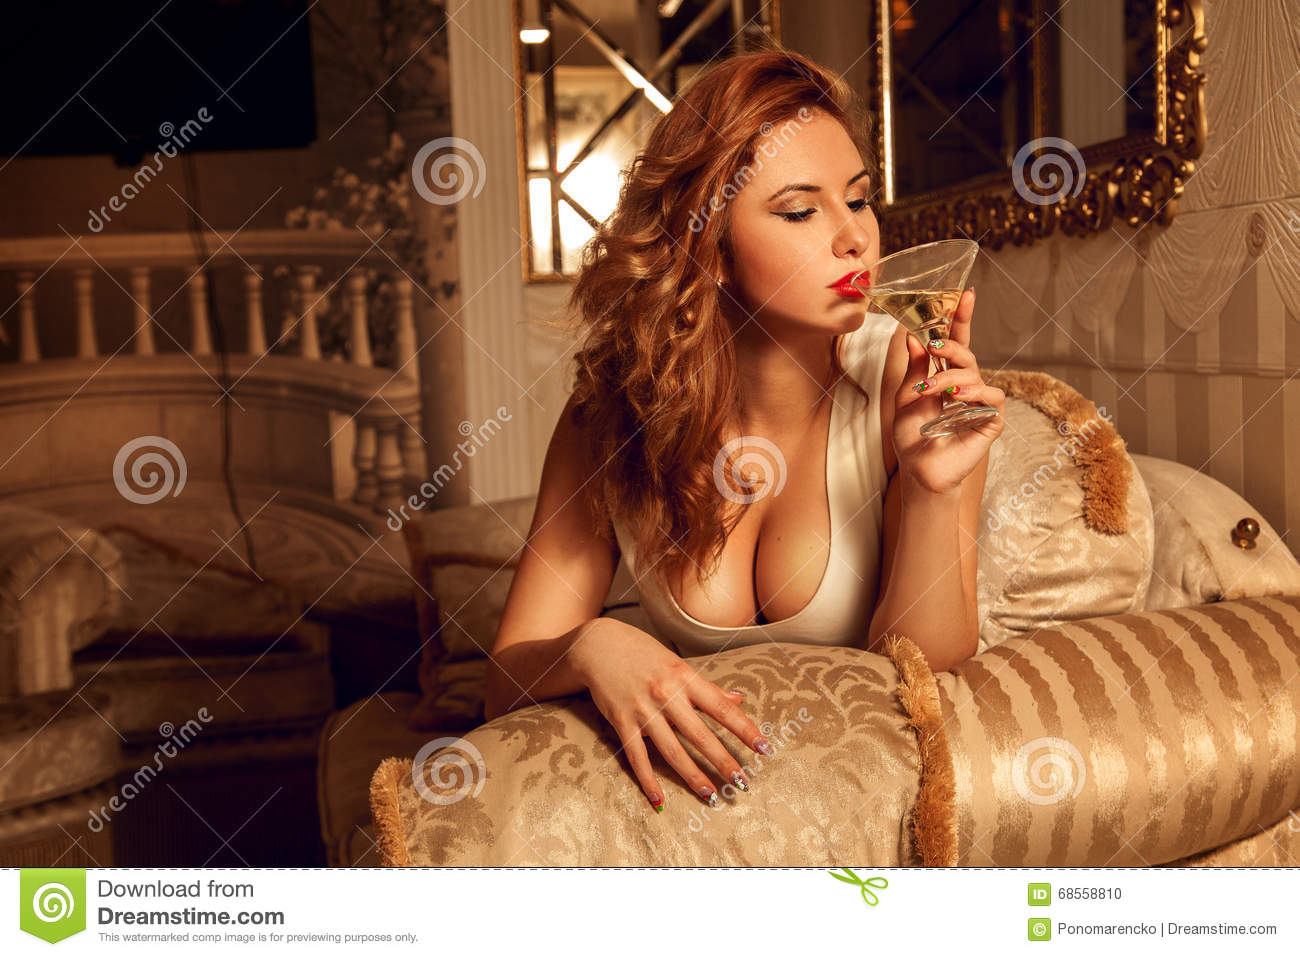 Hot Young Lady With Big Boobs Drinks Martini Stock Photo -3584